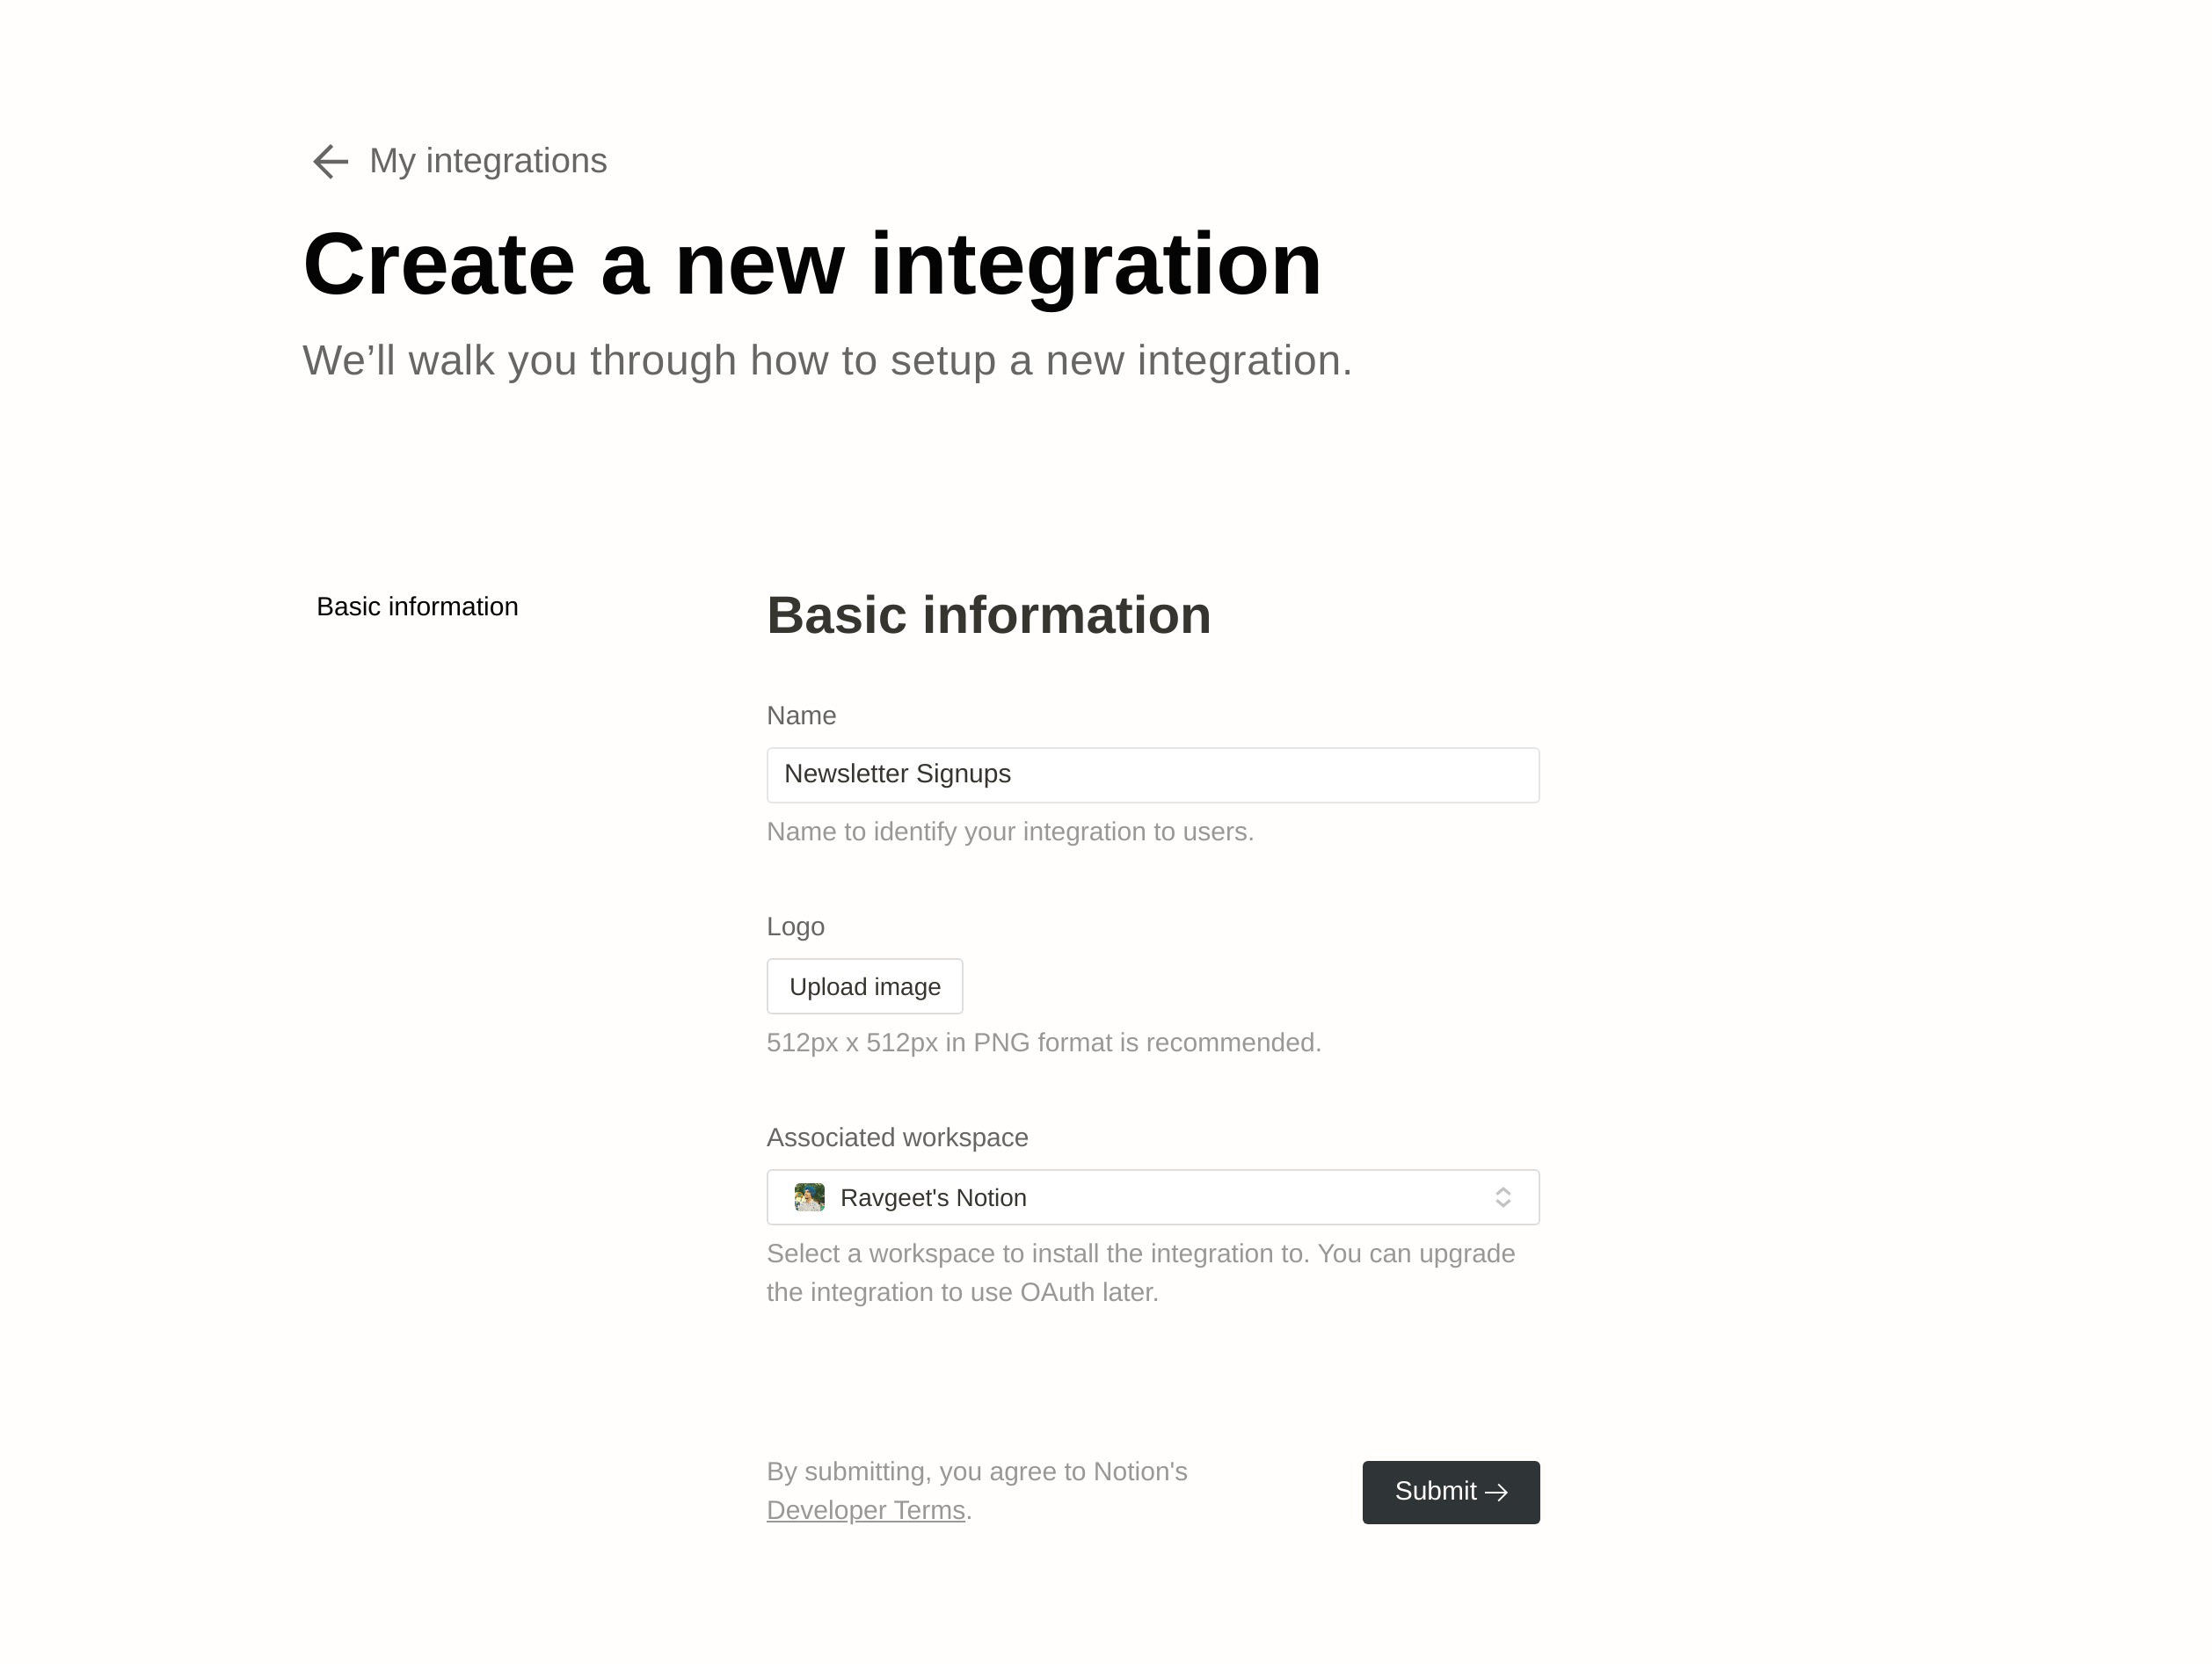 A plain white webpage for Notion integrations. It has a heading that says Create a new integration with form fields for name, logo, associated workspace, and a submit button.